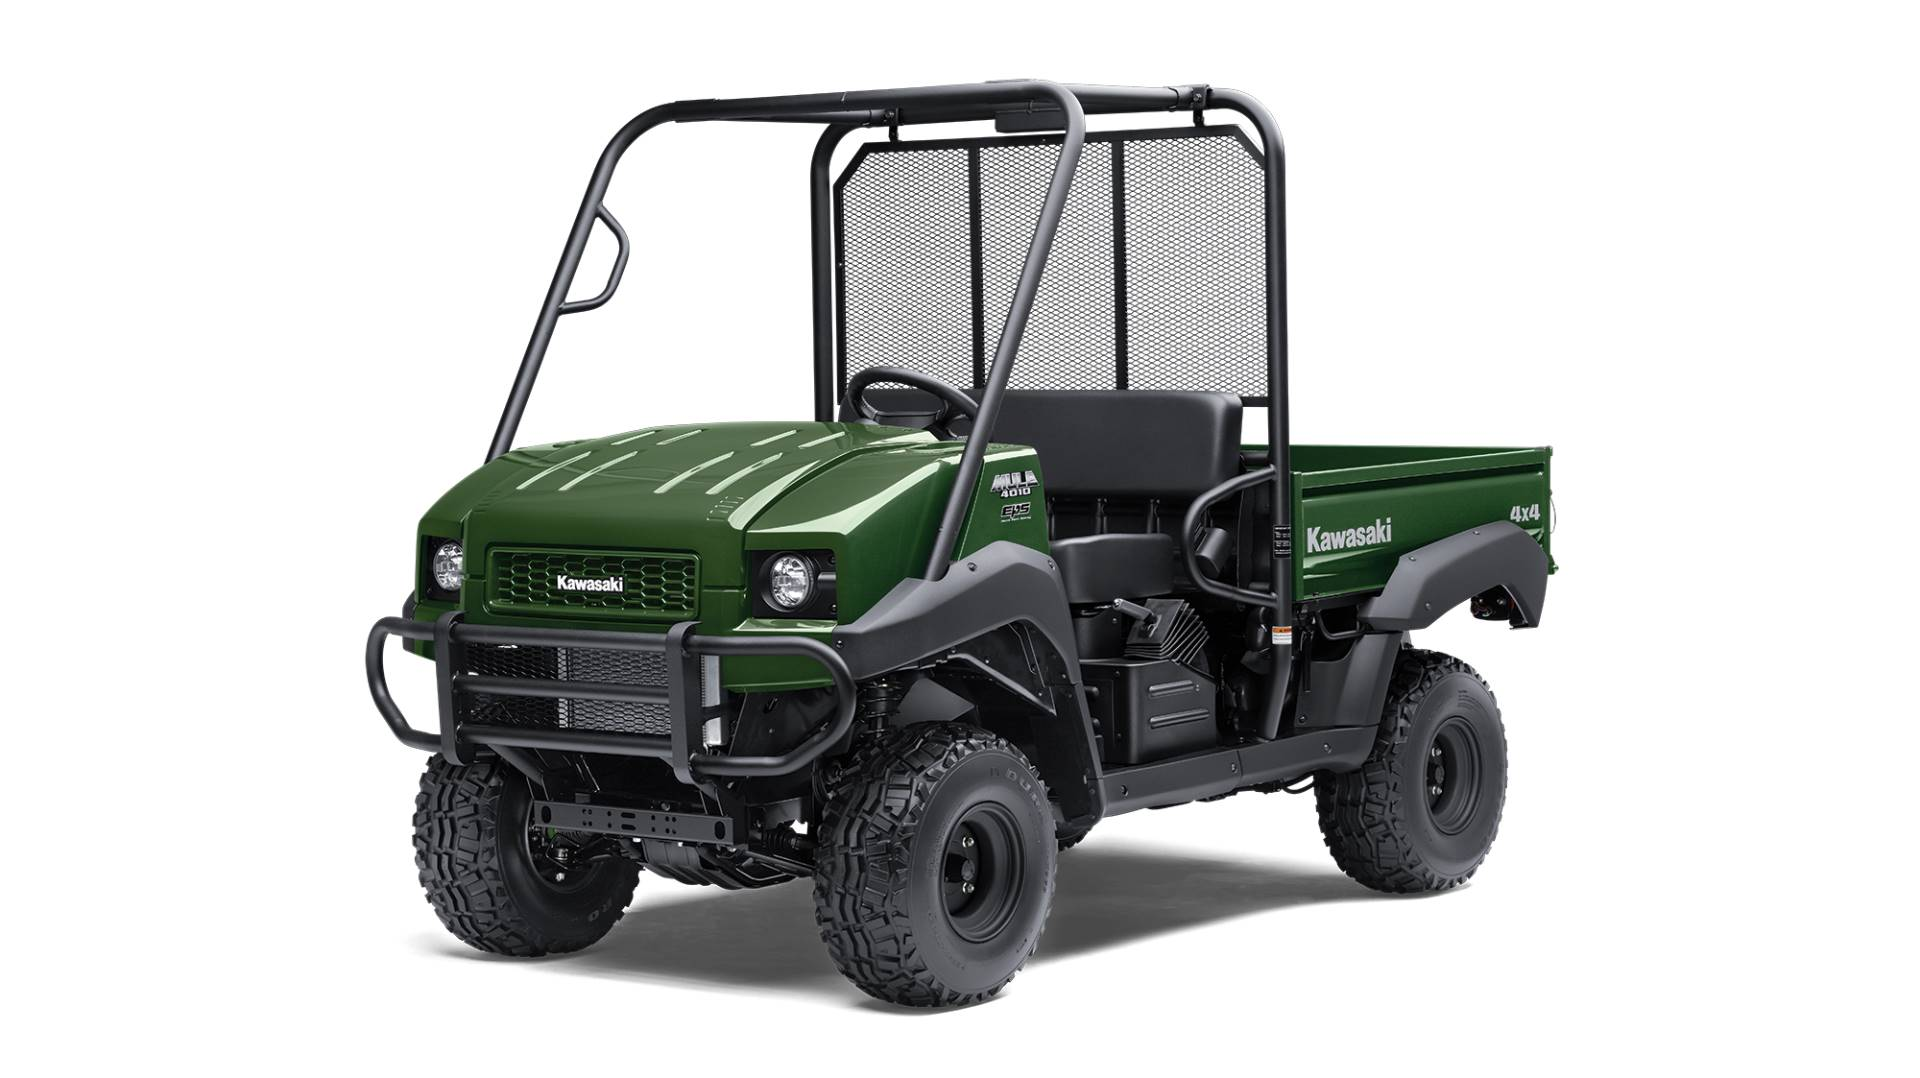 2020 Kawasaki MULE 4010 4X4 in Yakima, Washington